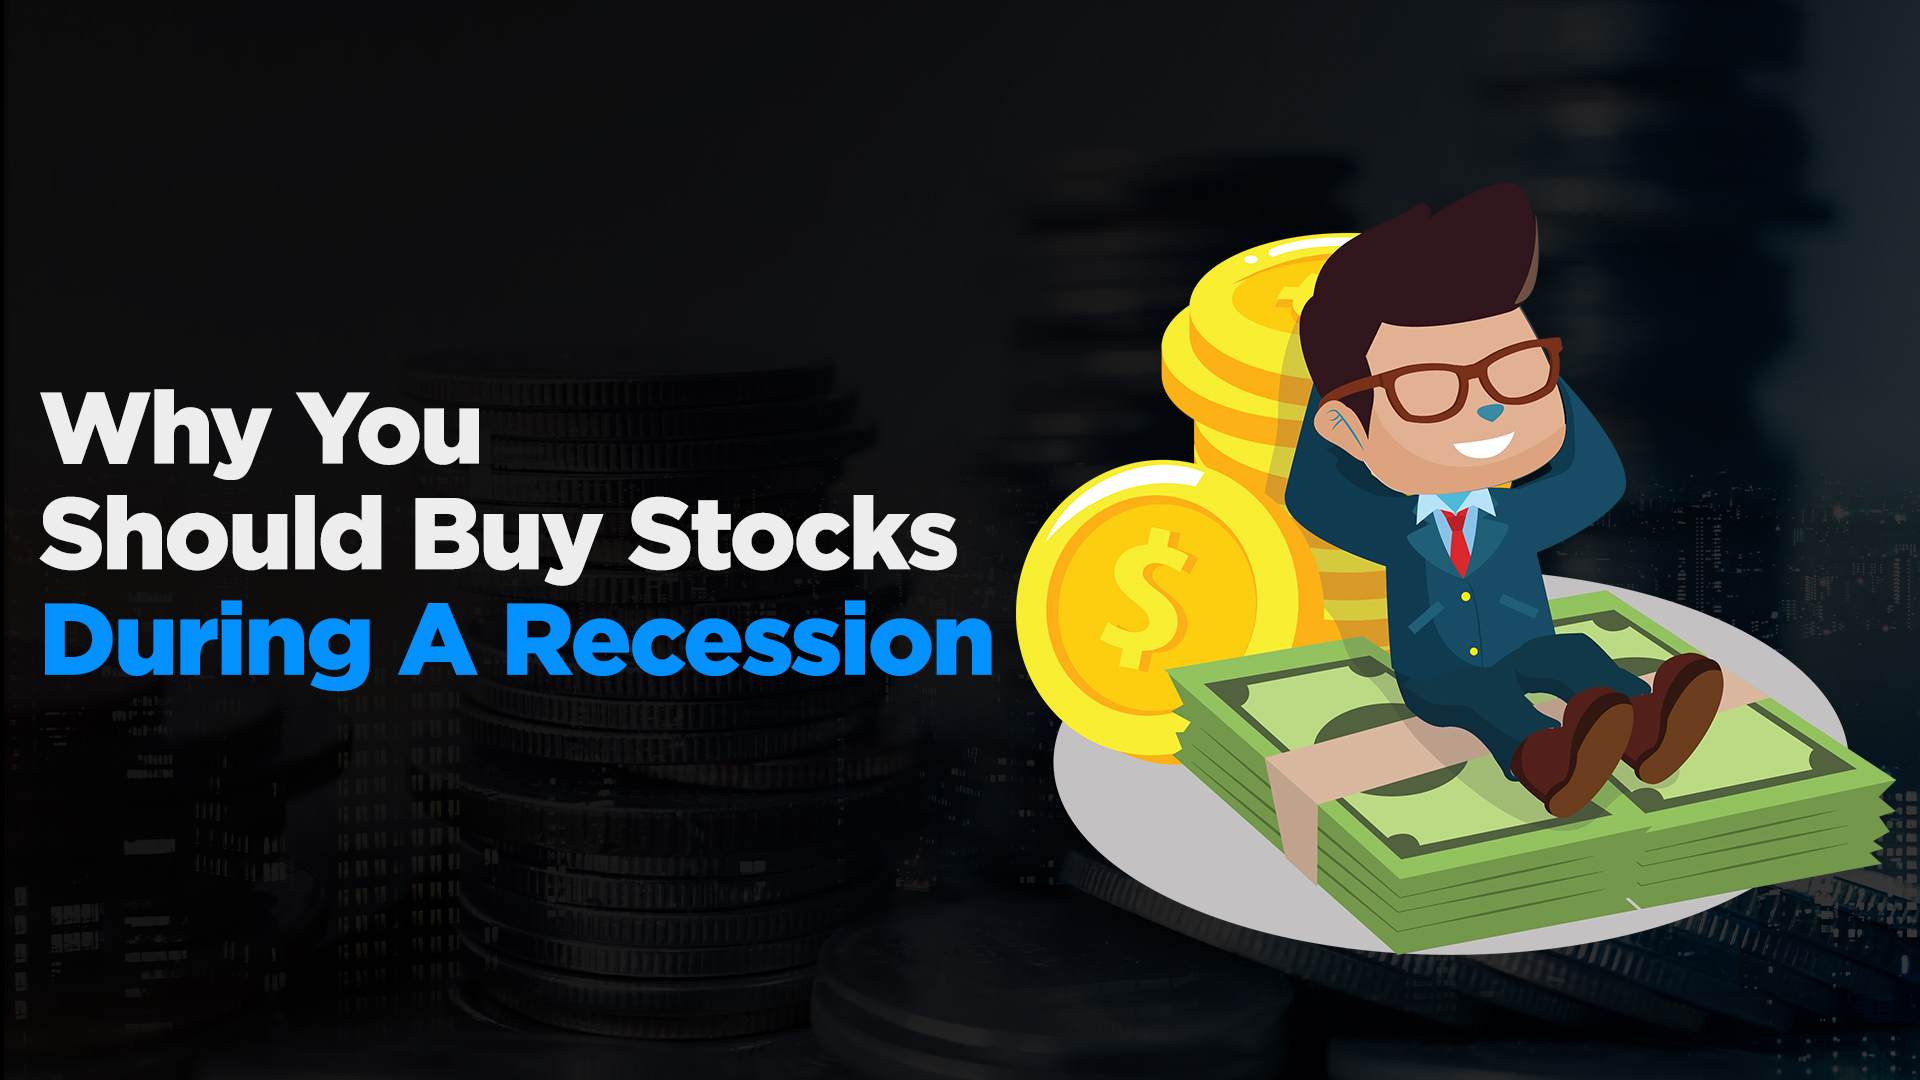 Investing Secrets: Why You Should Buy Stocks During A Recession